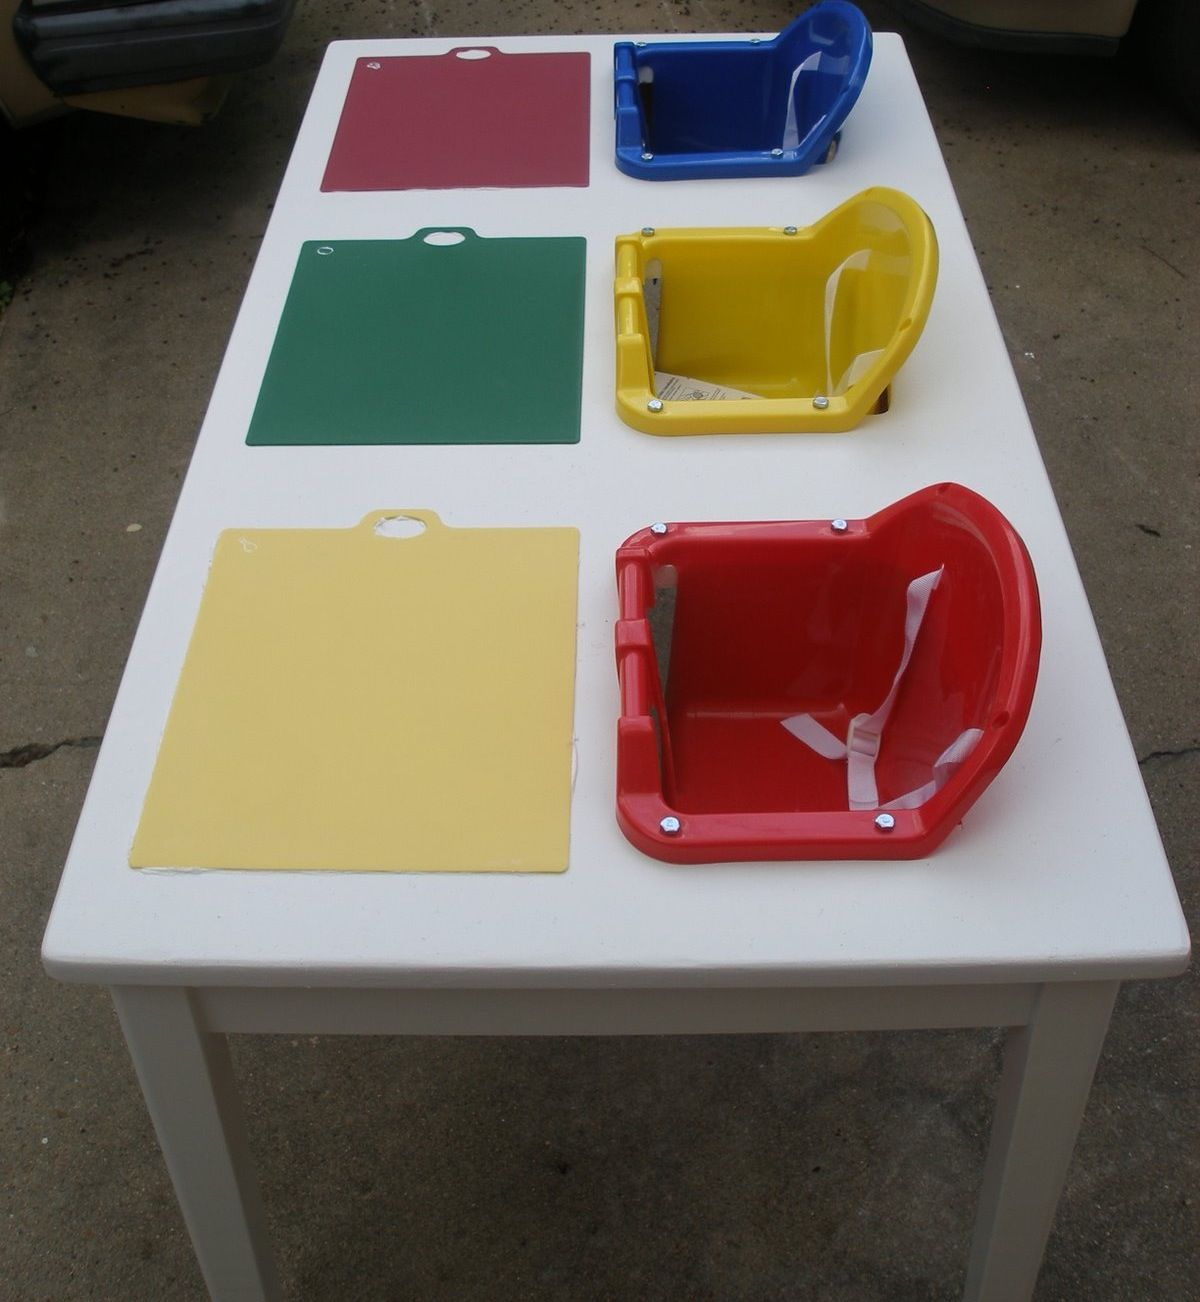 A feeding table for the infants to eat am snack, lunch